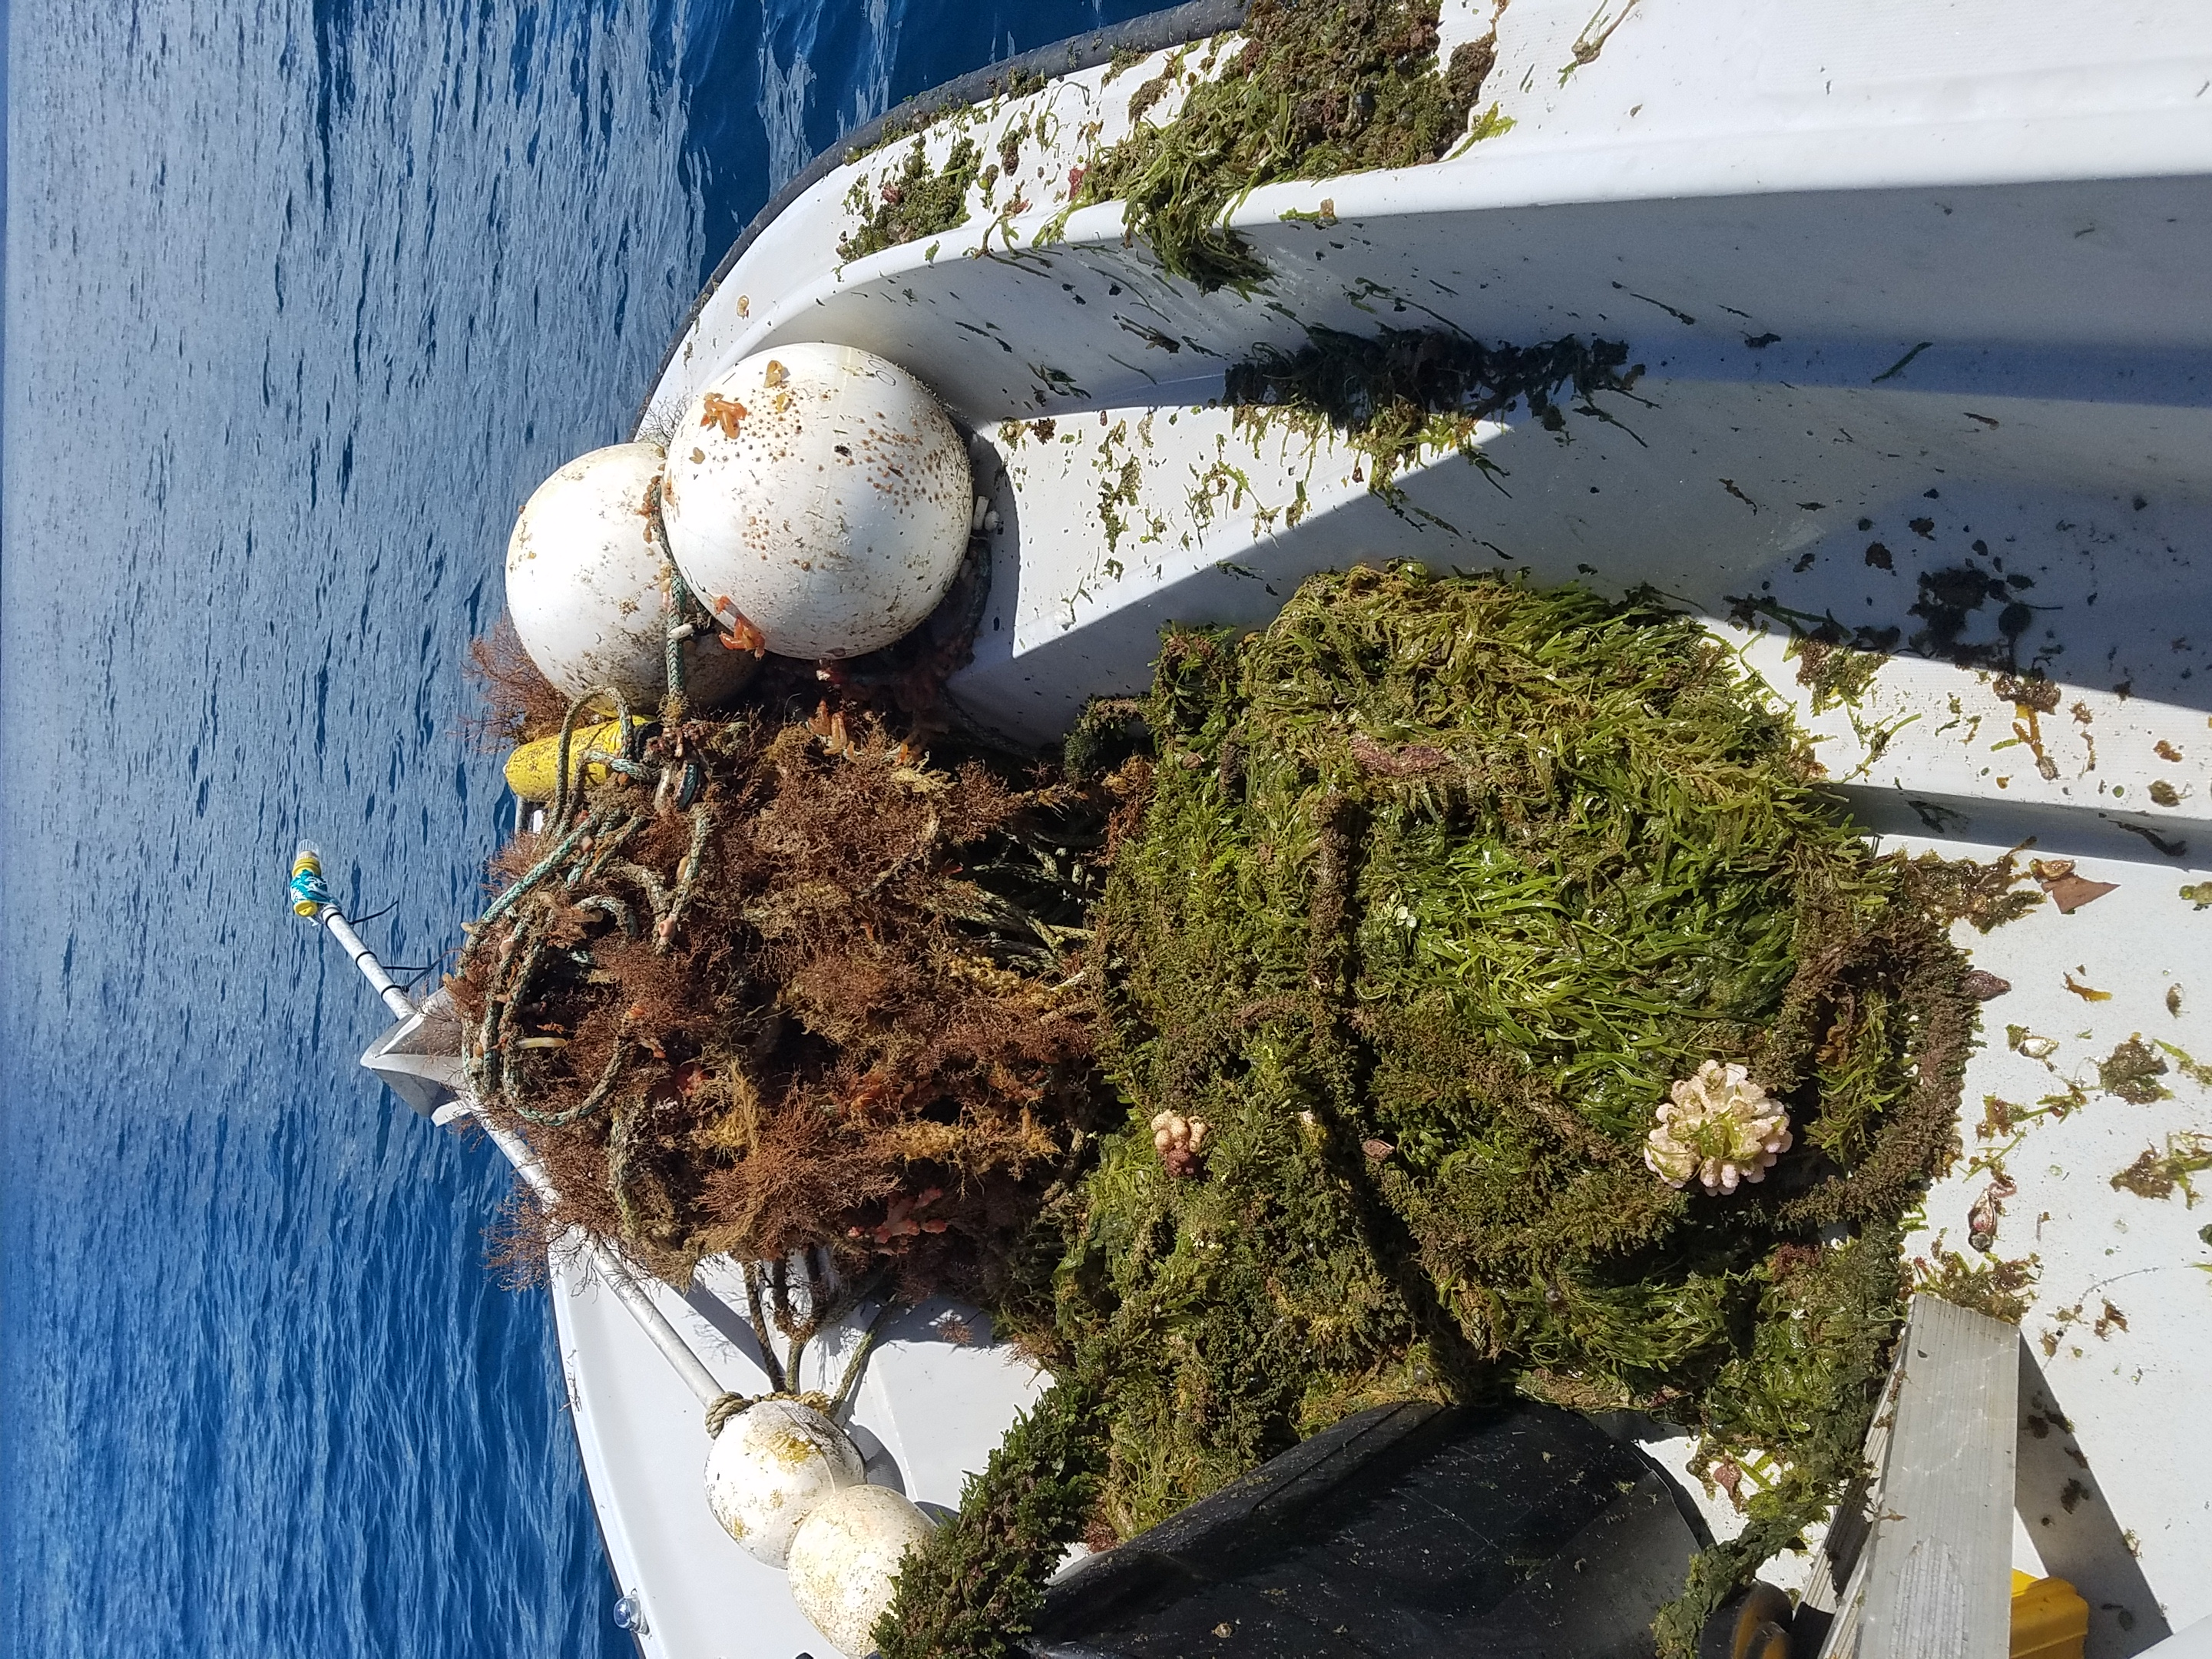 Plenty of growth on buoy mooring